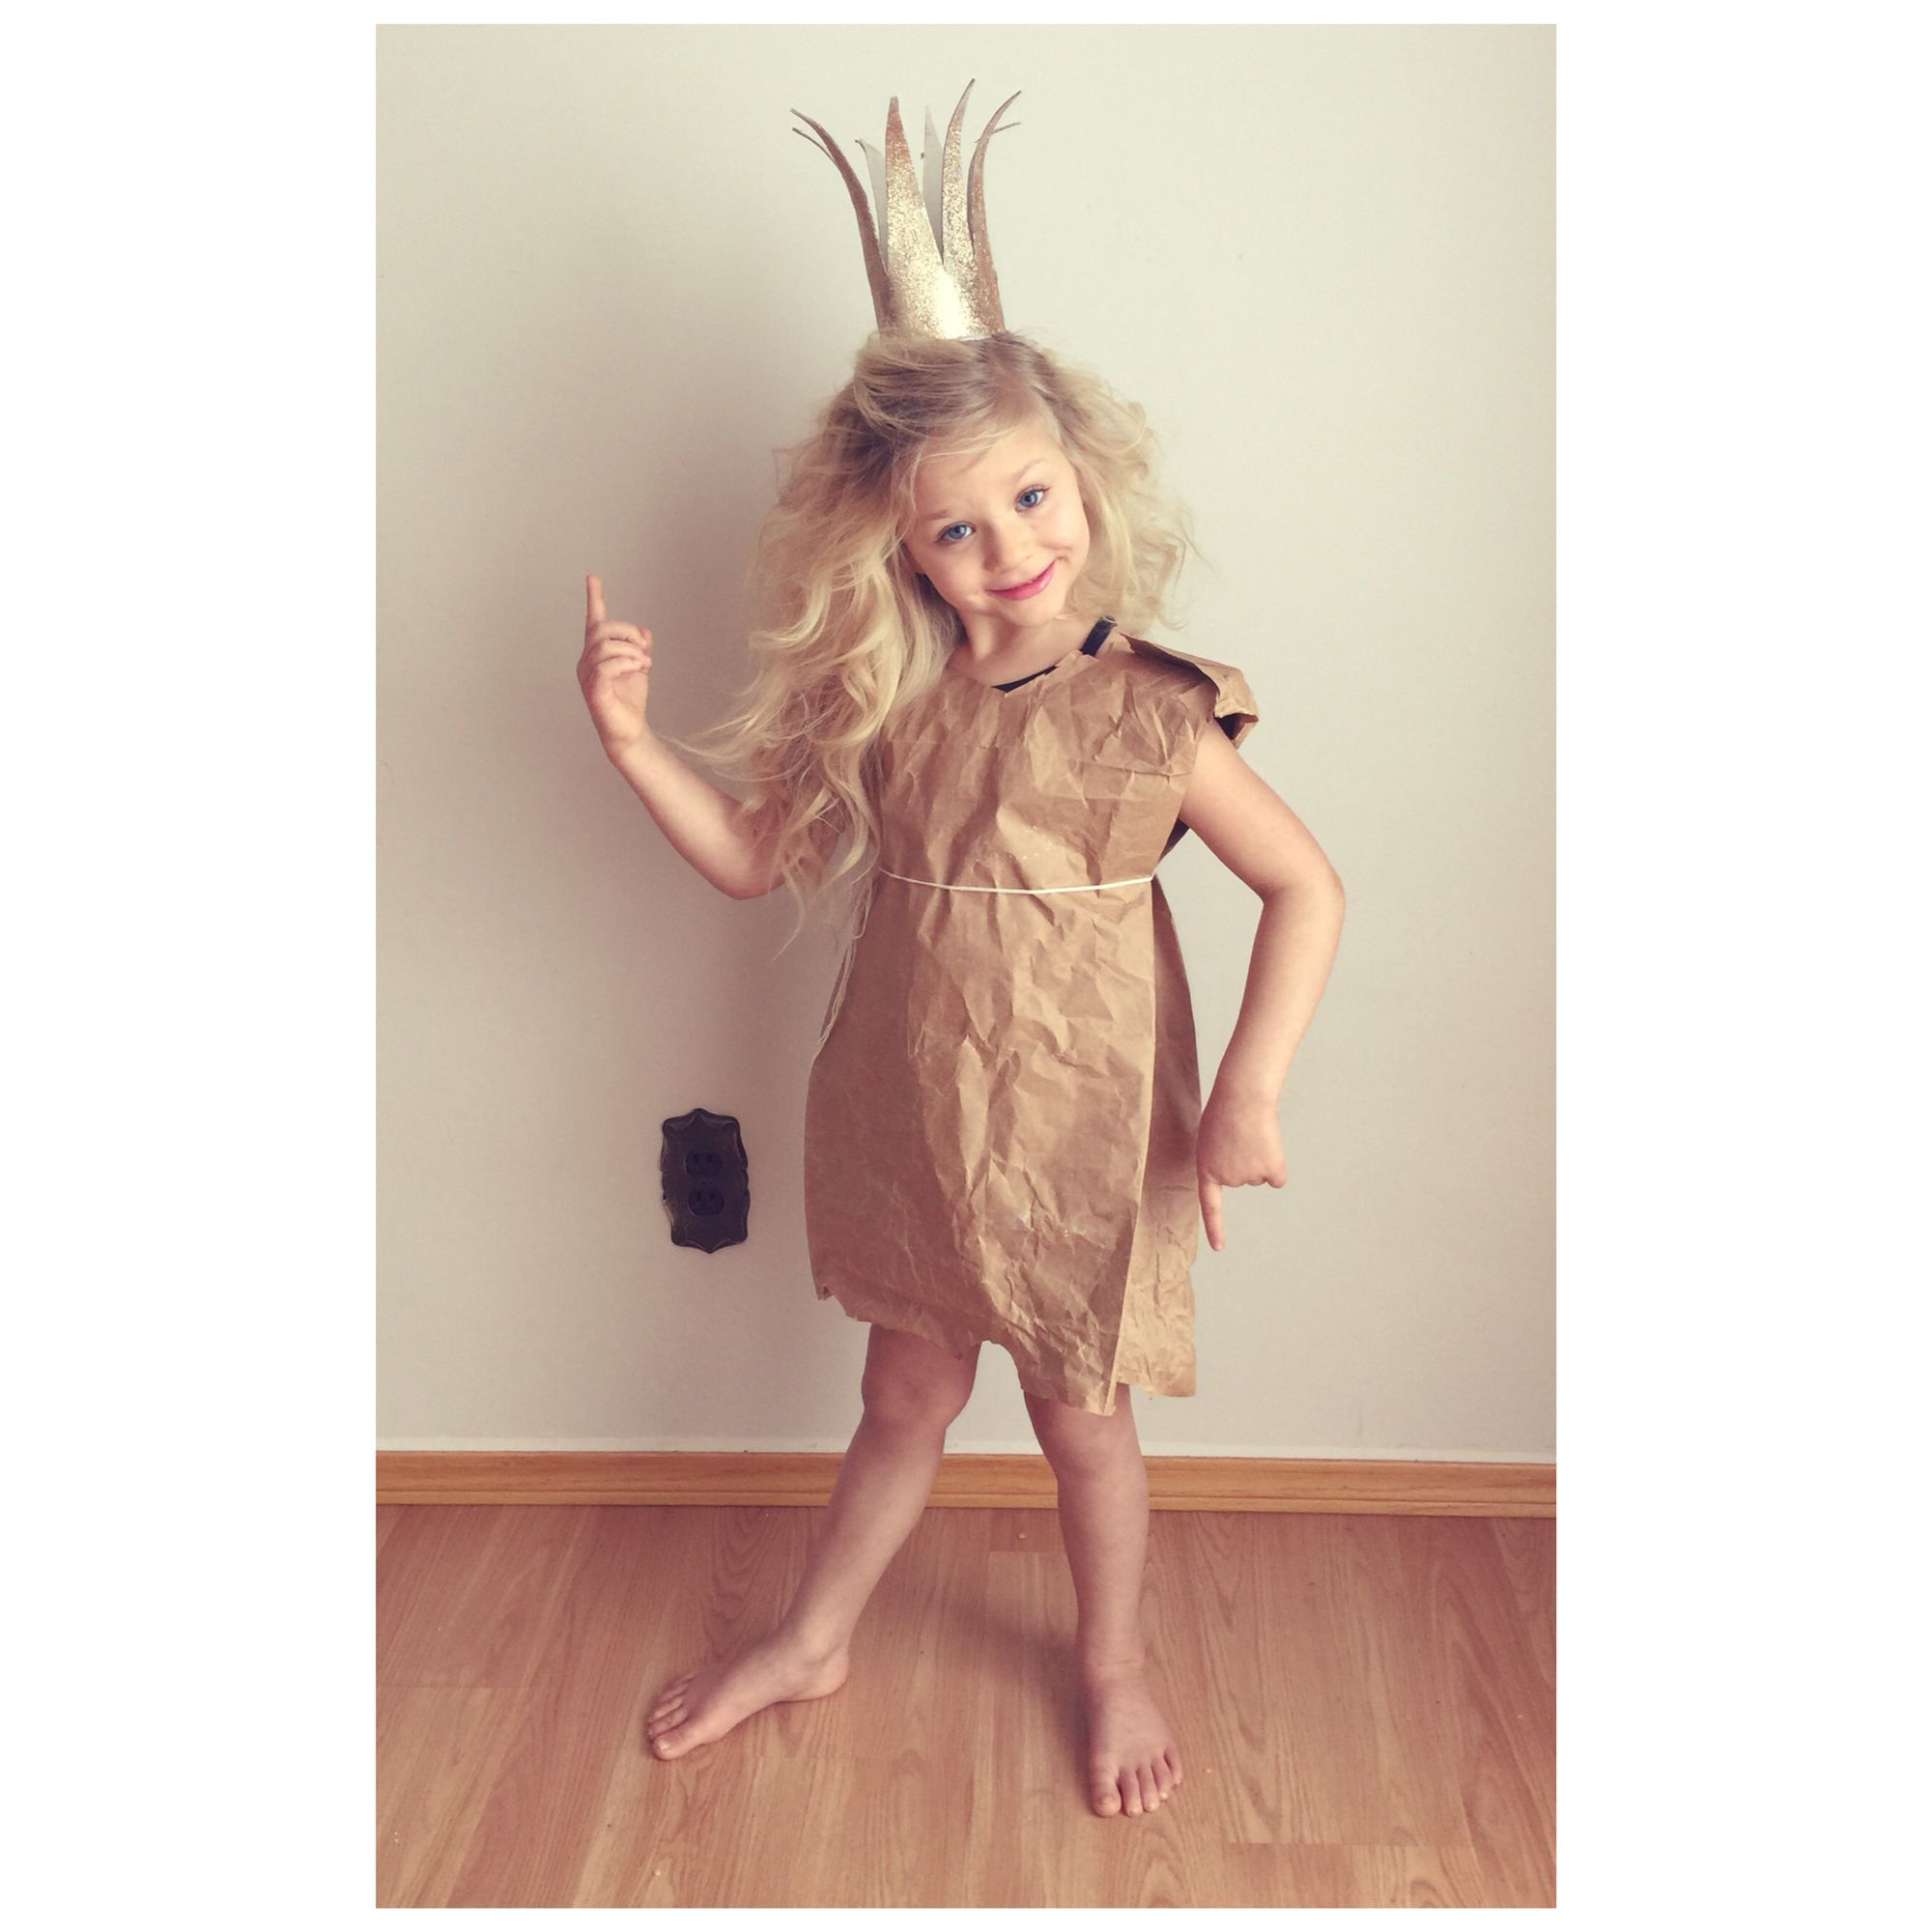 Find great deals on eBay for paper bag princess costume. Shop with confidence. Skip to main content. eBay: 12 PRINCESS TIARA kids paper Party birthday bag costume fancy dress GIRL See more like this. 6 Paper Tiara Hats - Princess Costume Loot/Party Bag Fillers Wedding Dress .